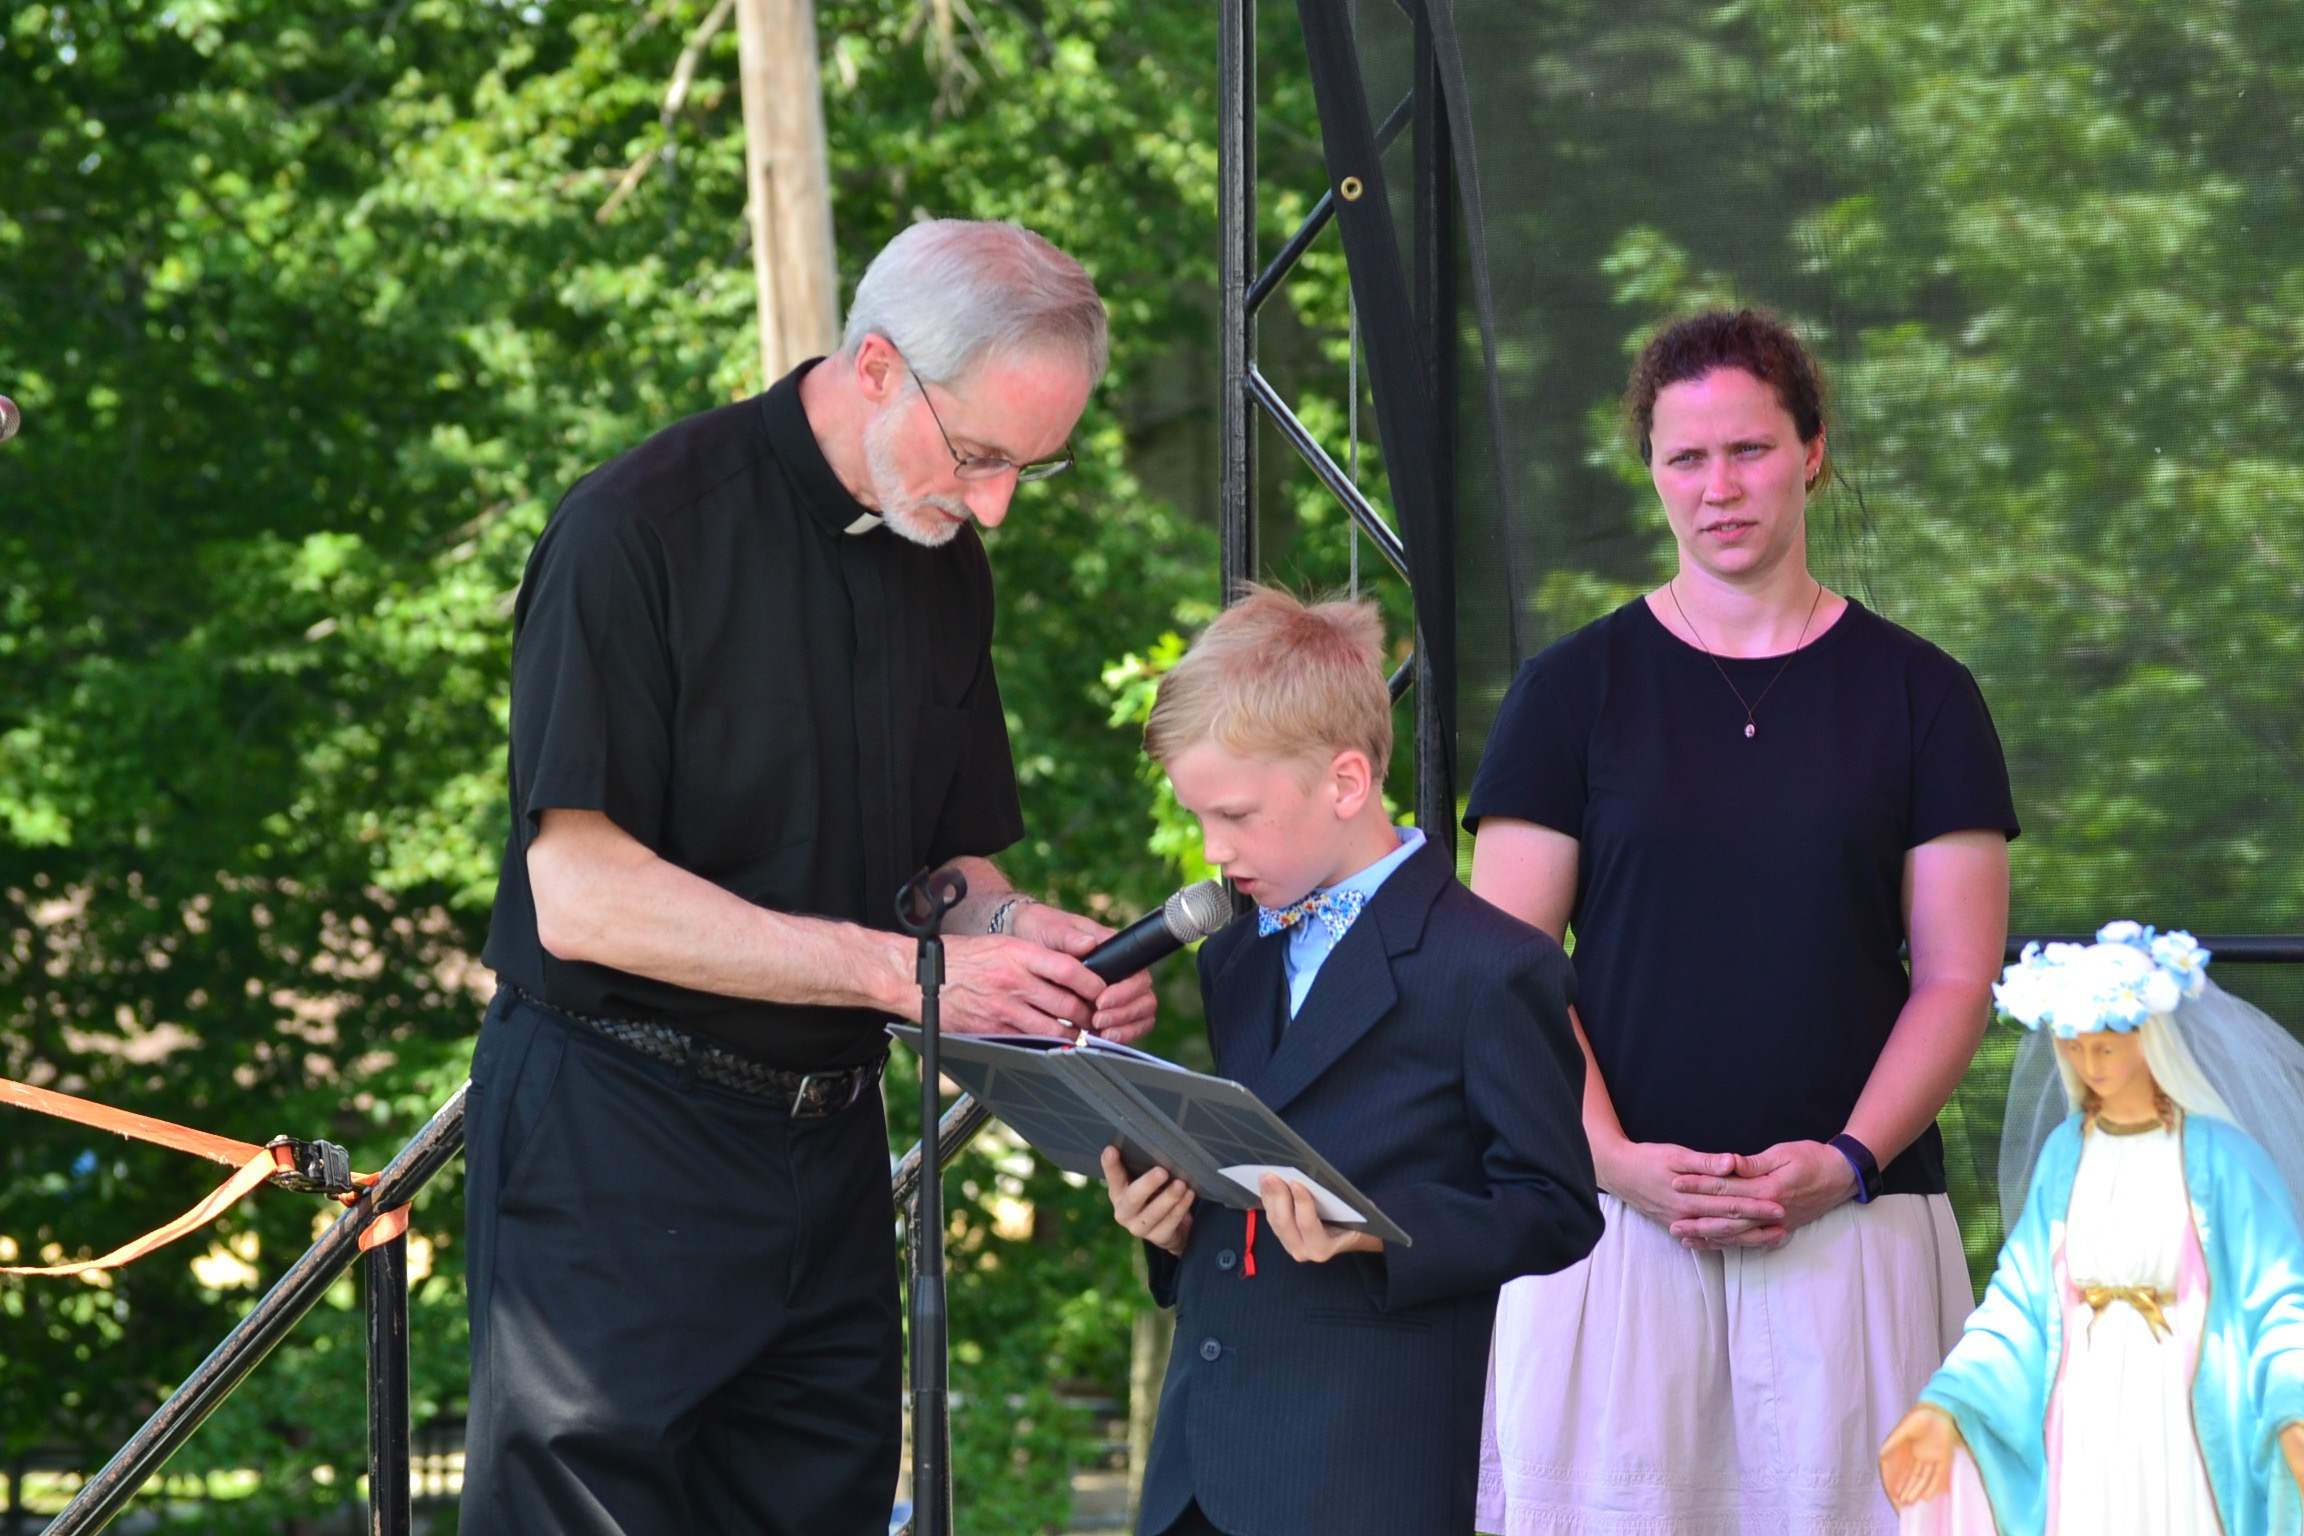 First Communicant from St. Catharine grade school (CT Photo/Greg Hartman)